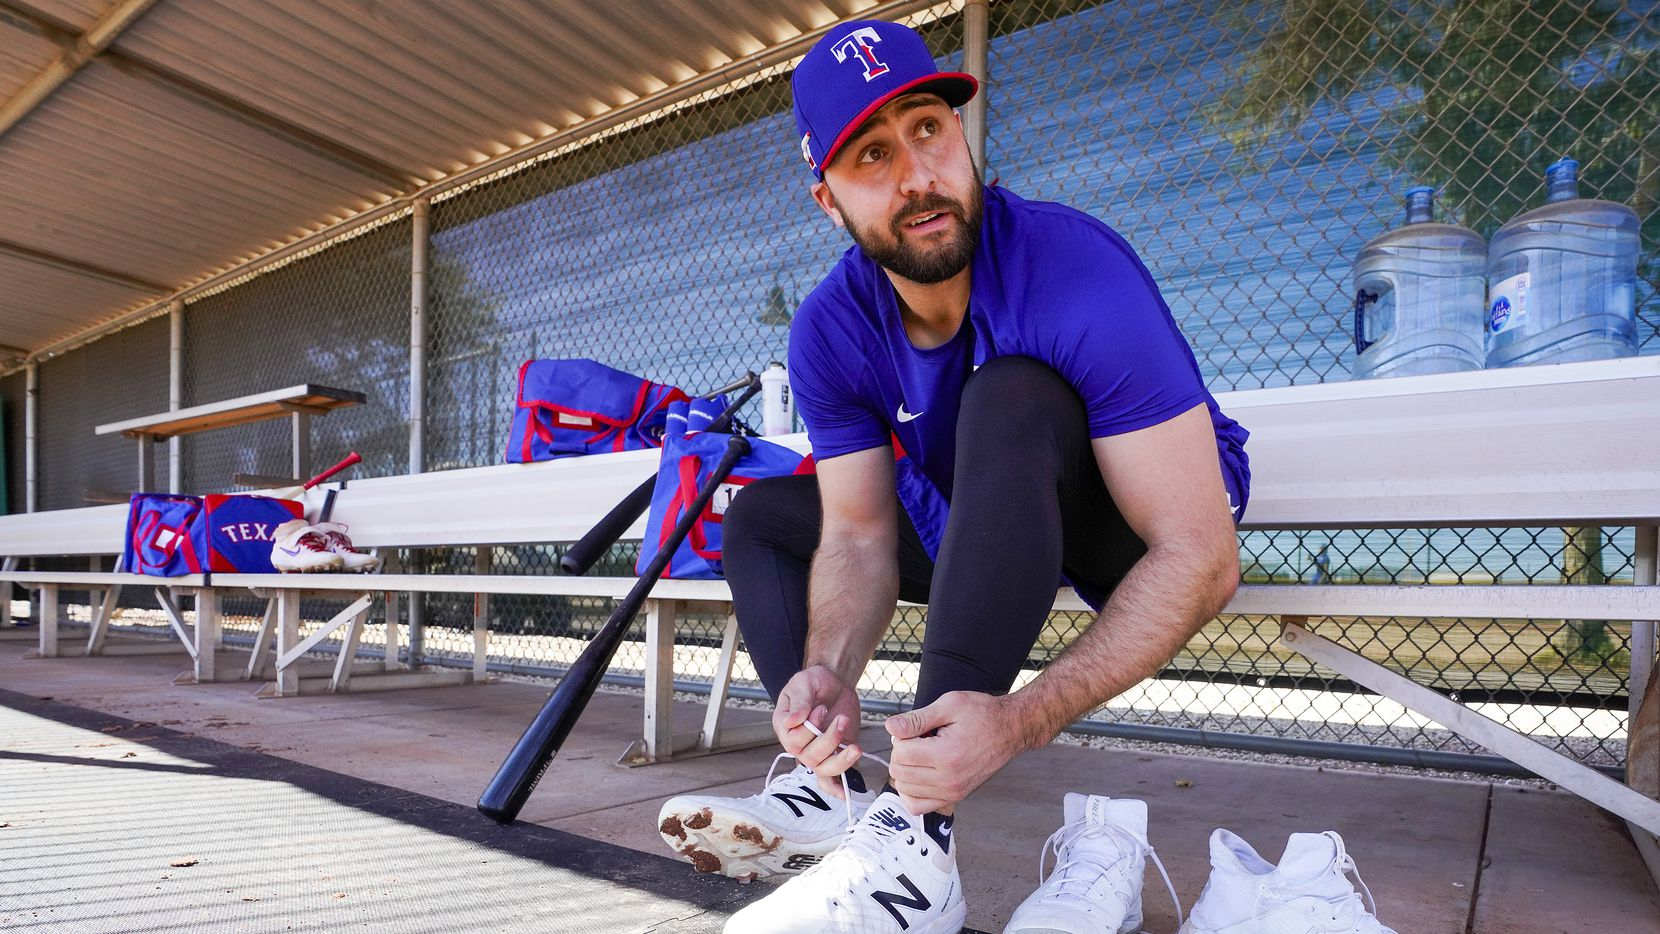 Texas Rangers outfielder Joey Gallo laces up his cleats before taking batting practice during a spring training workout at the team's training facility on Friday, Feb. 14, 2020, in Surprise, Ariz.